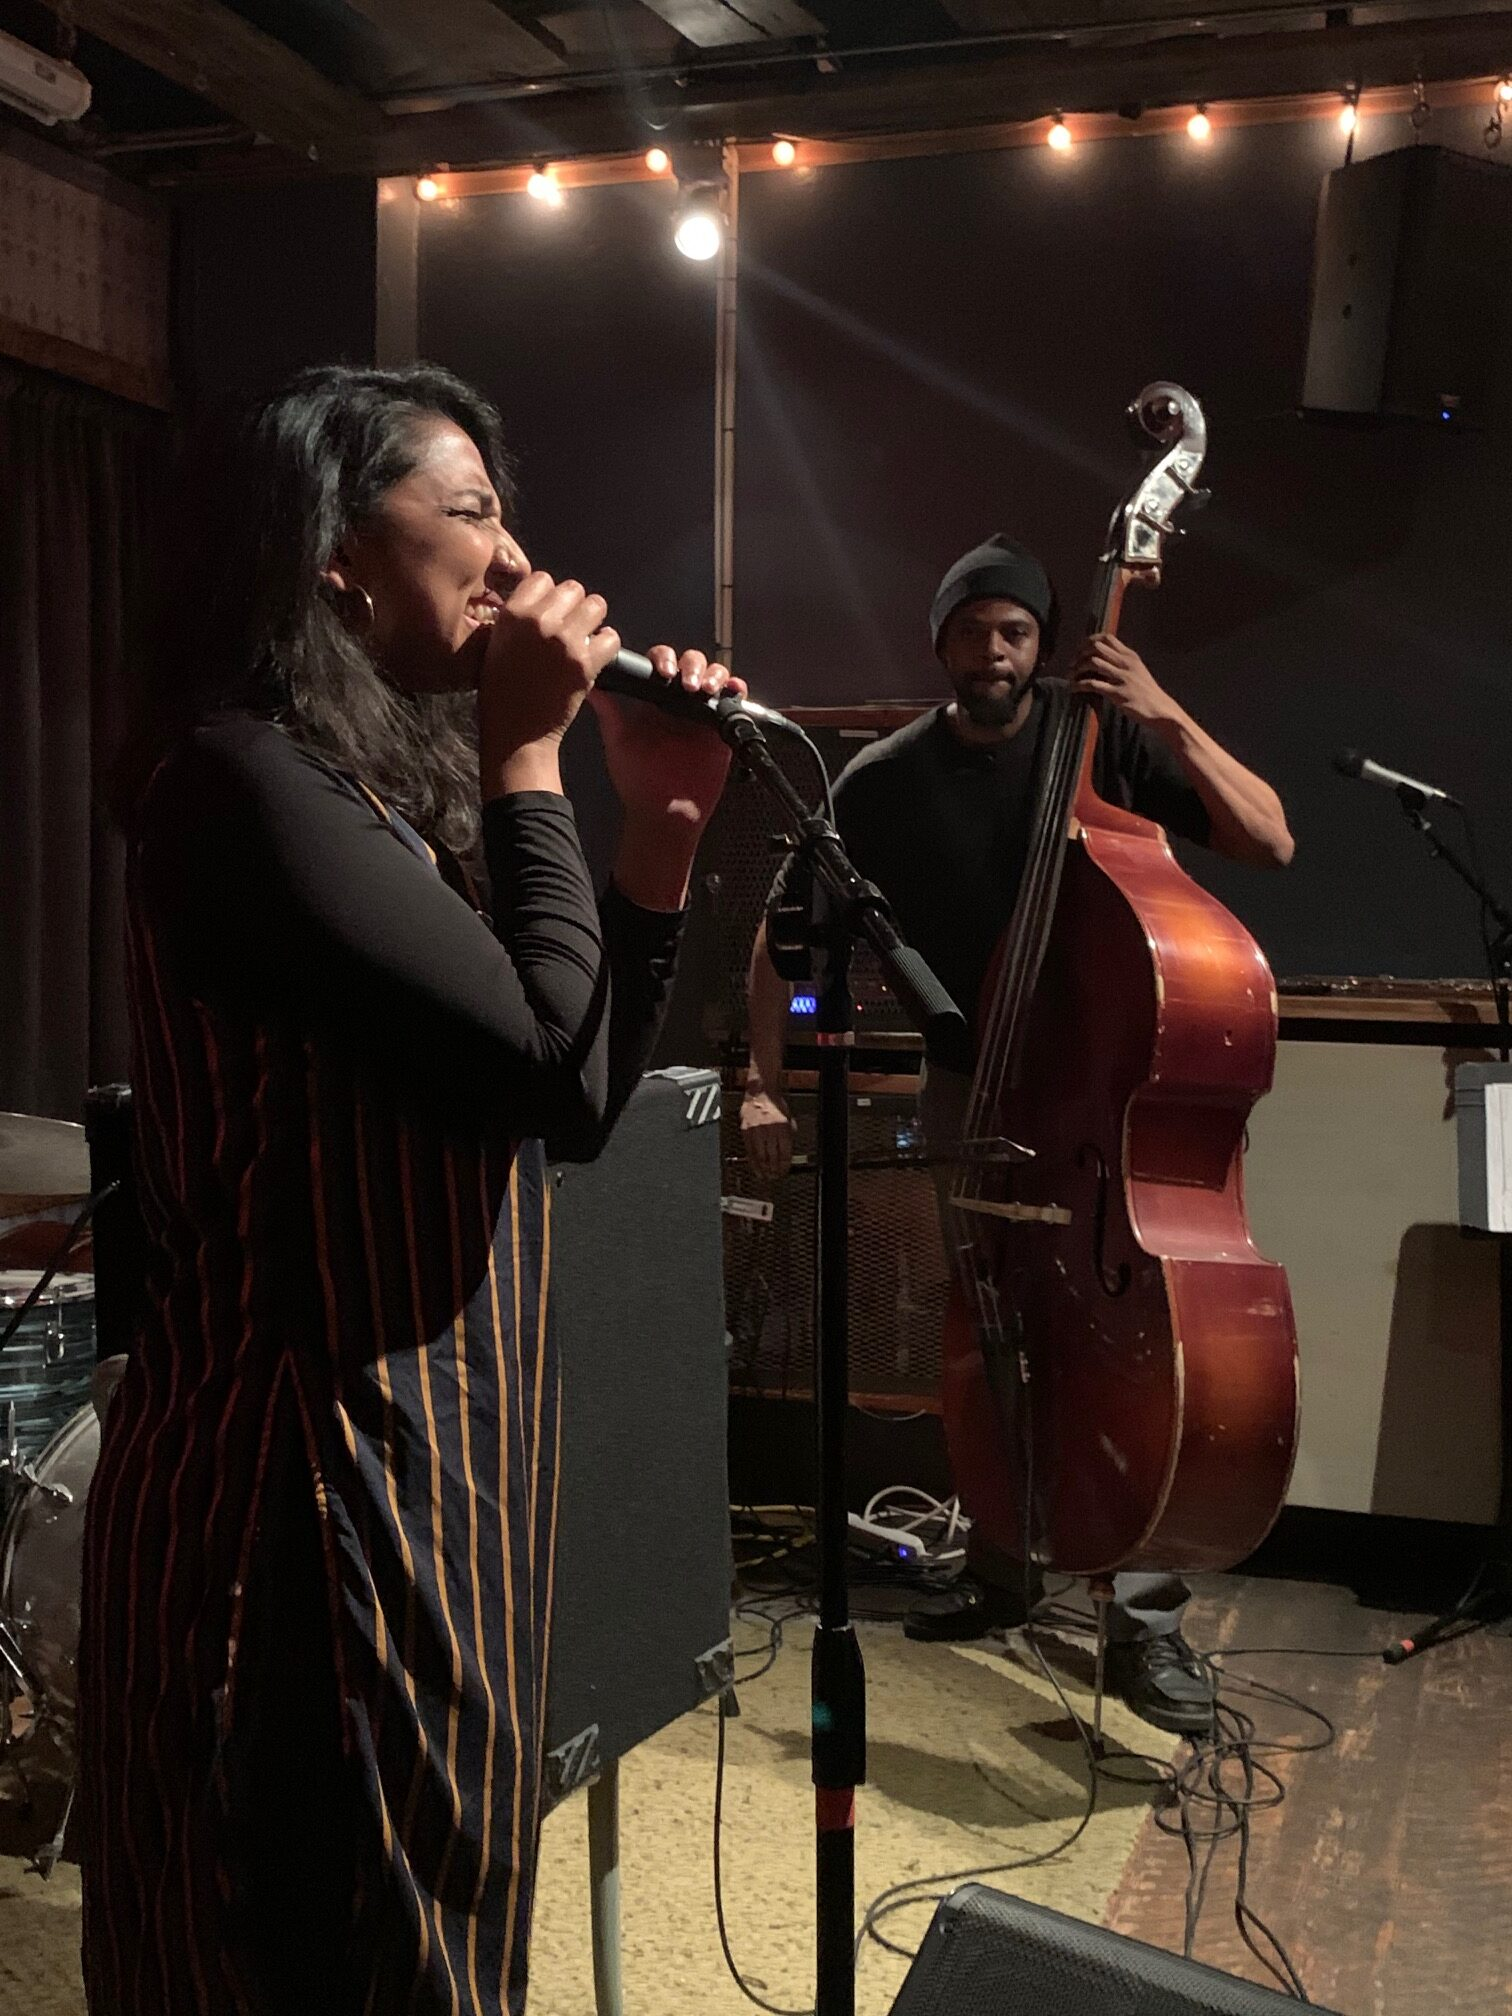 The Fierce Scream of Now: Amirtha Kidambi and Luke Stewart at Threes Brewing, Feb 26, 2020